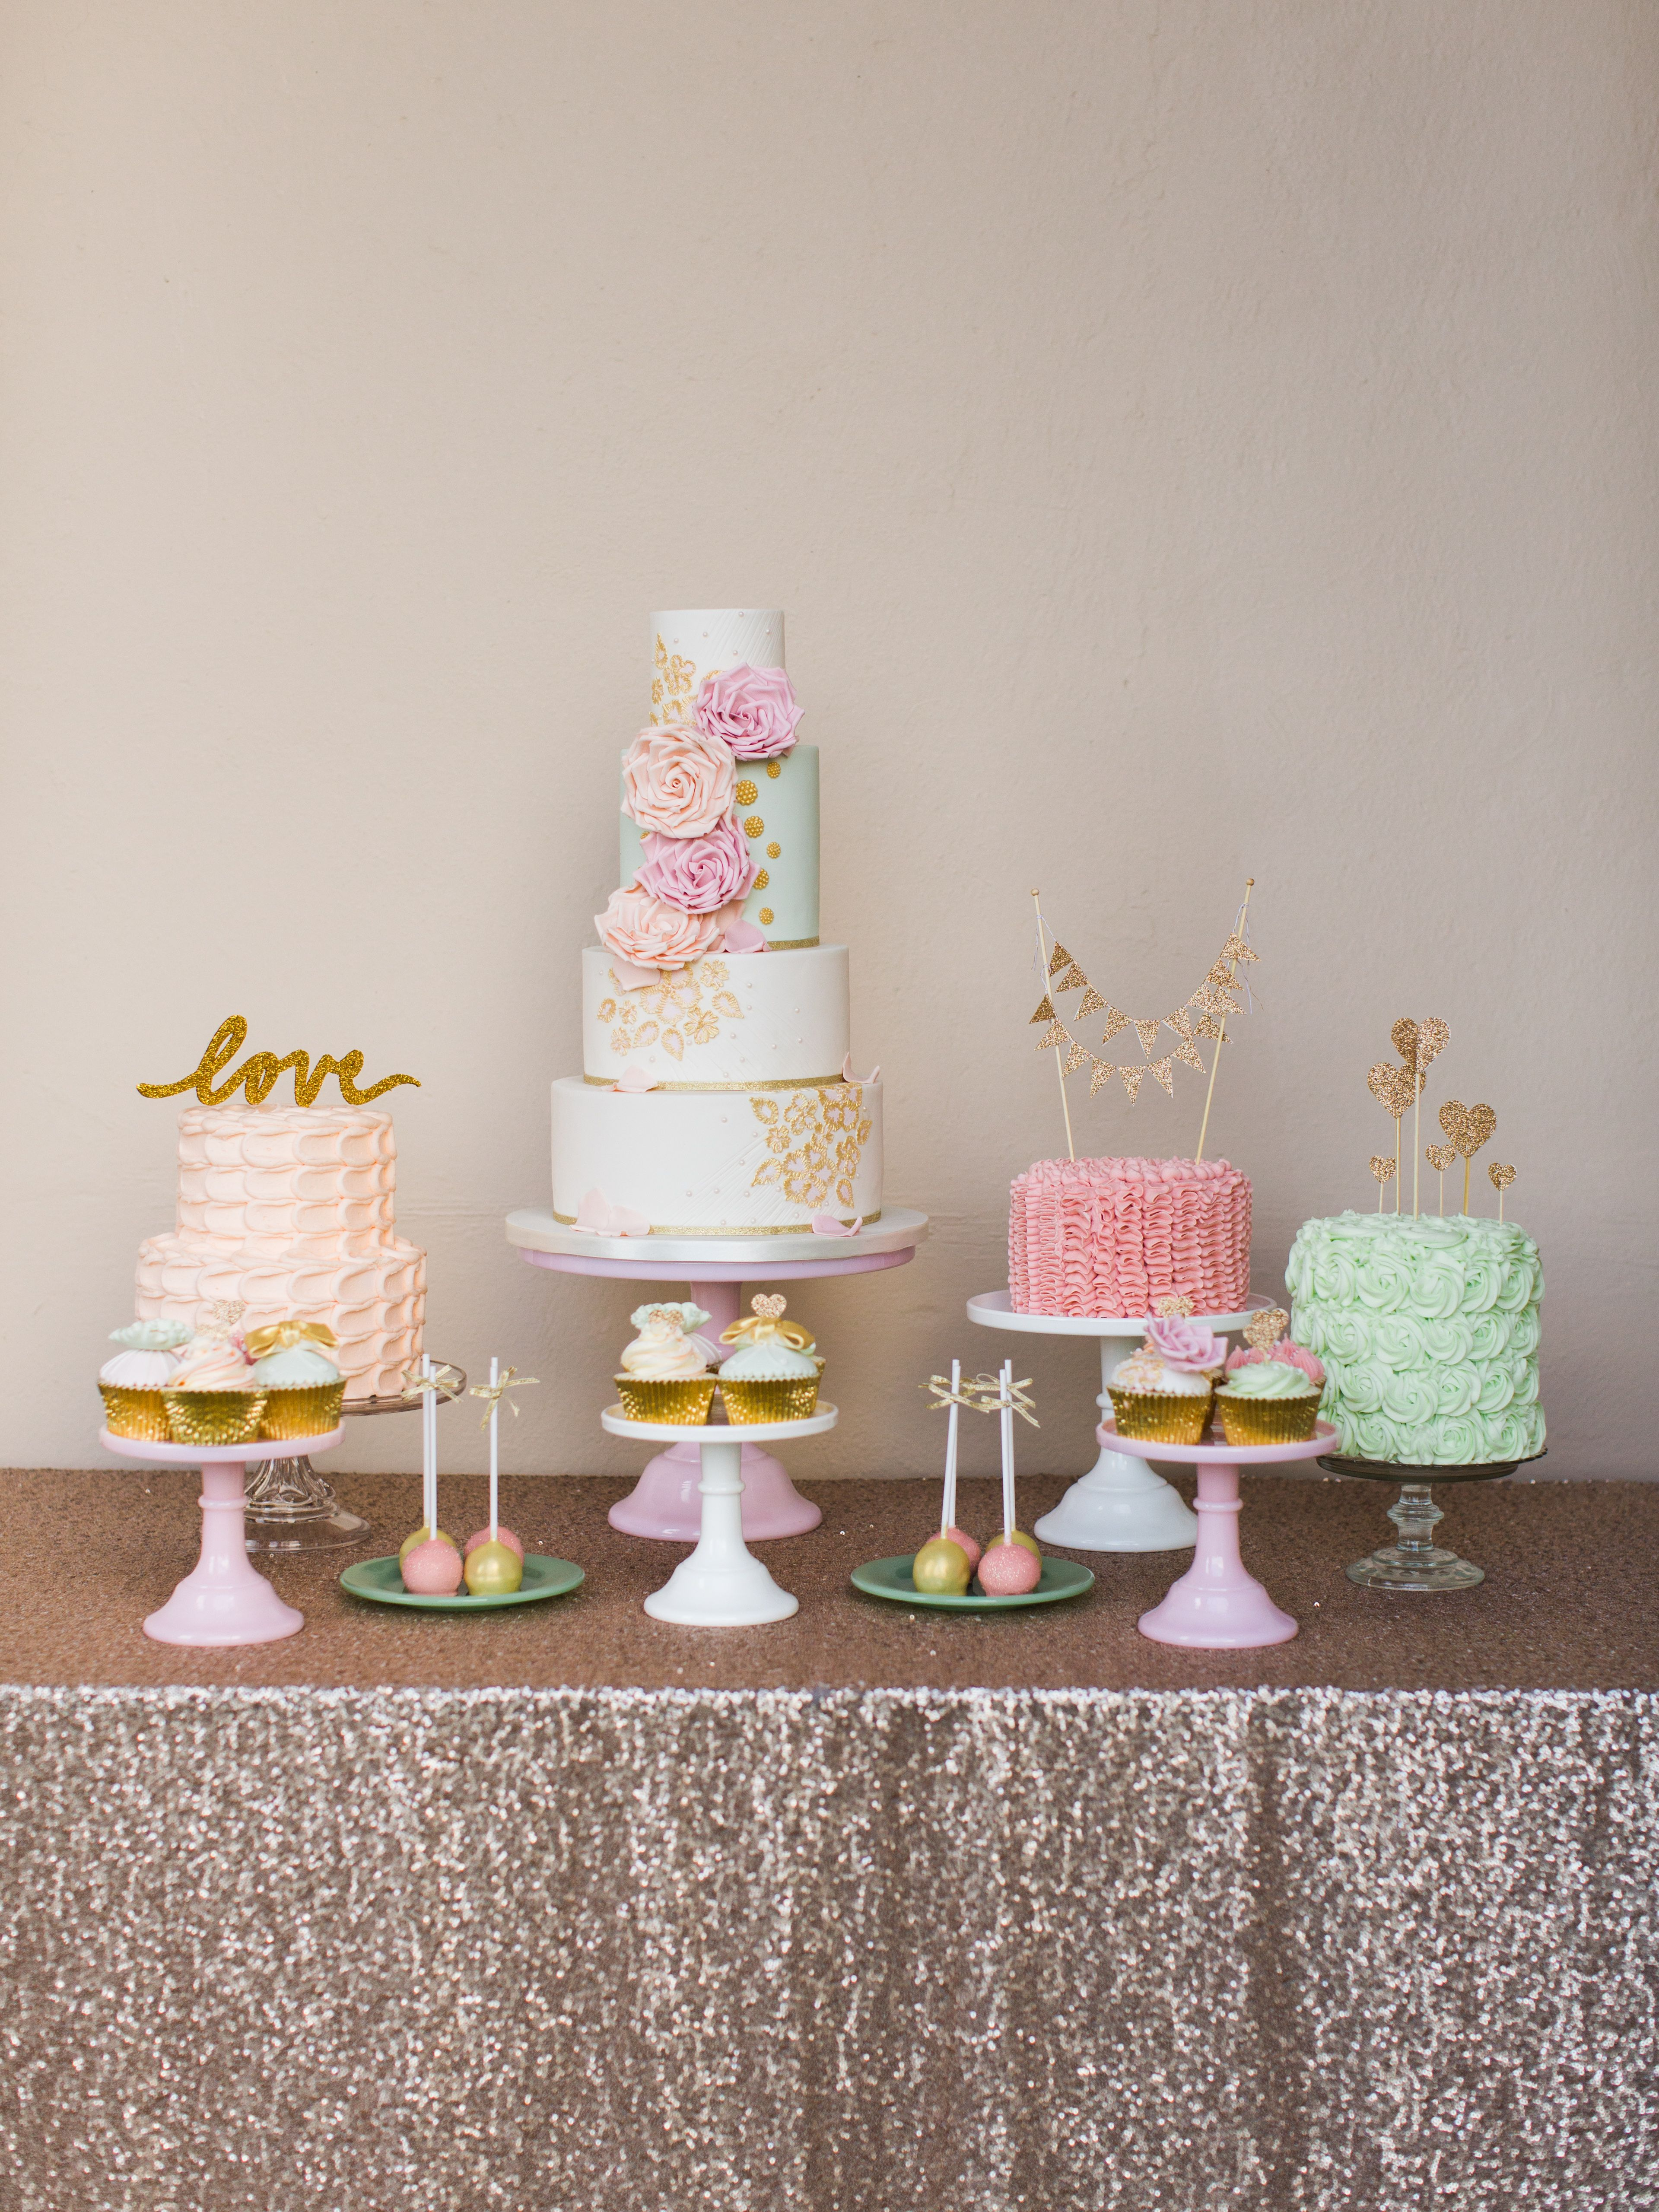 Courty loveu photoshoot by paula ouhara cakes by the cake cuppery